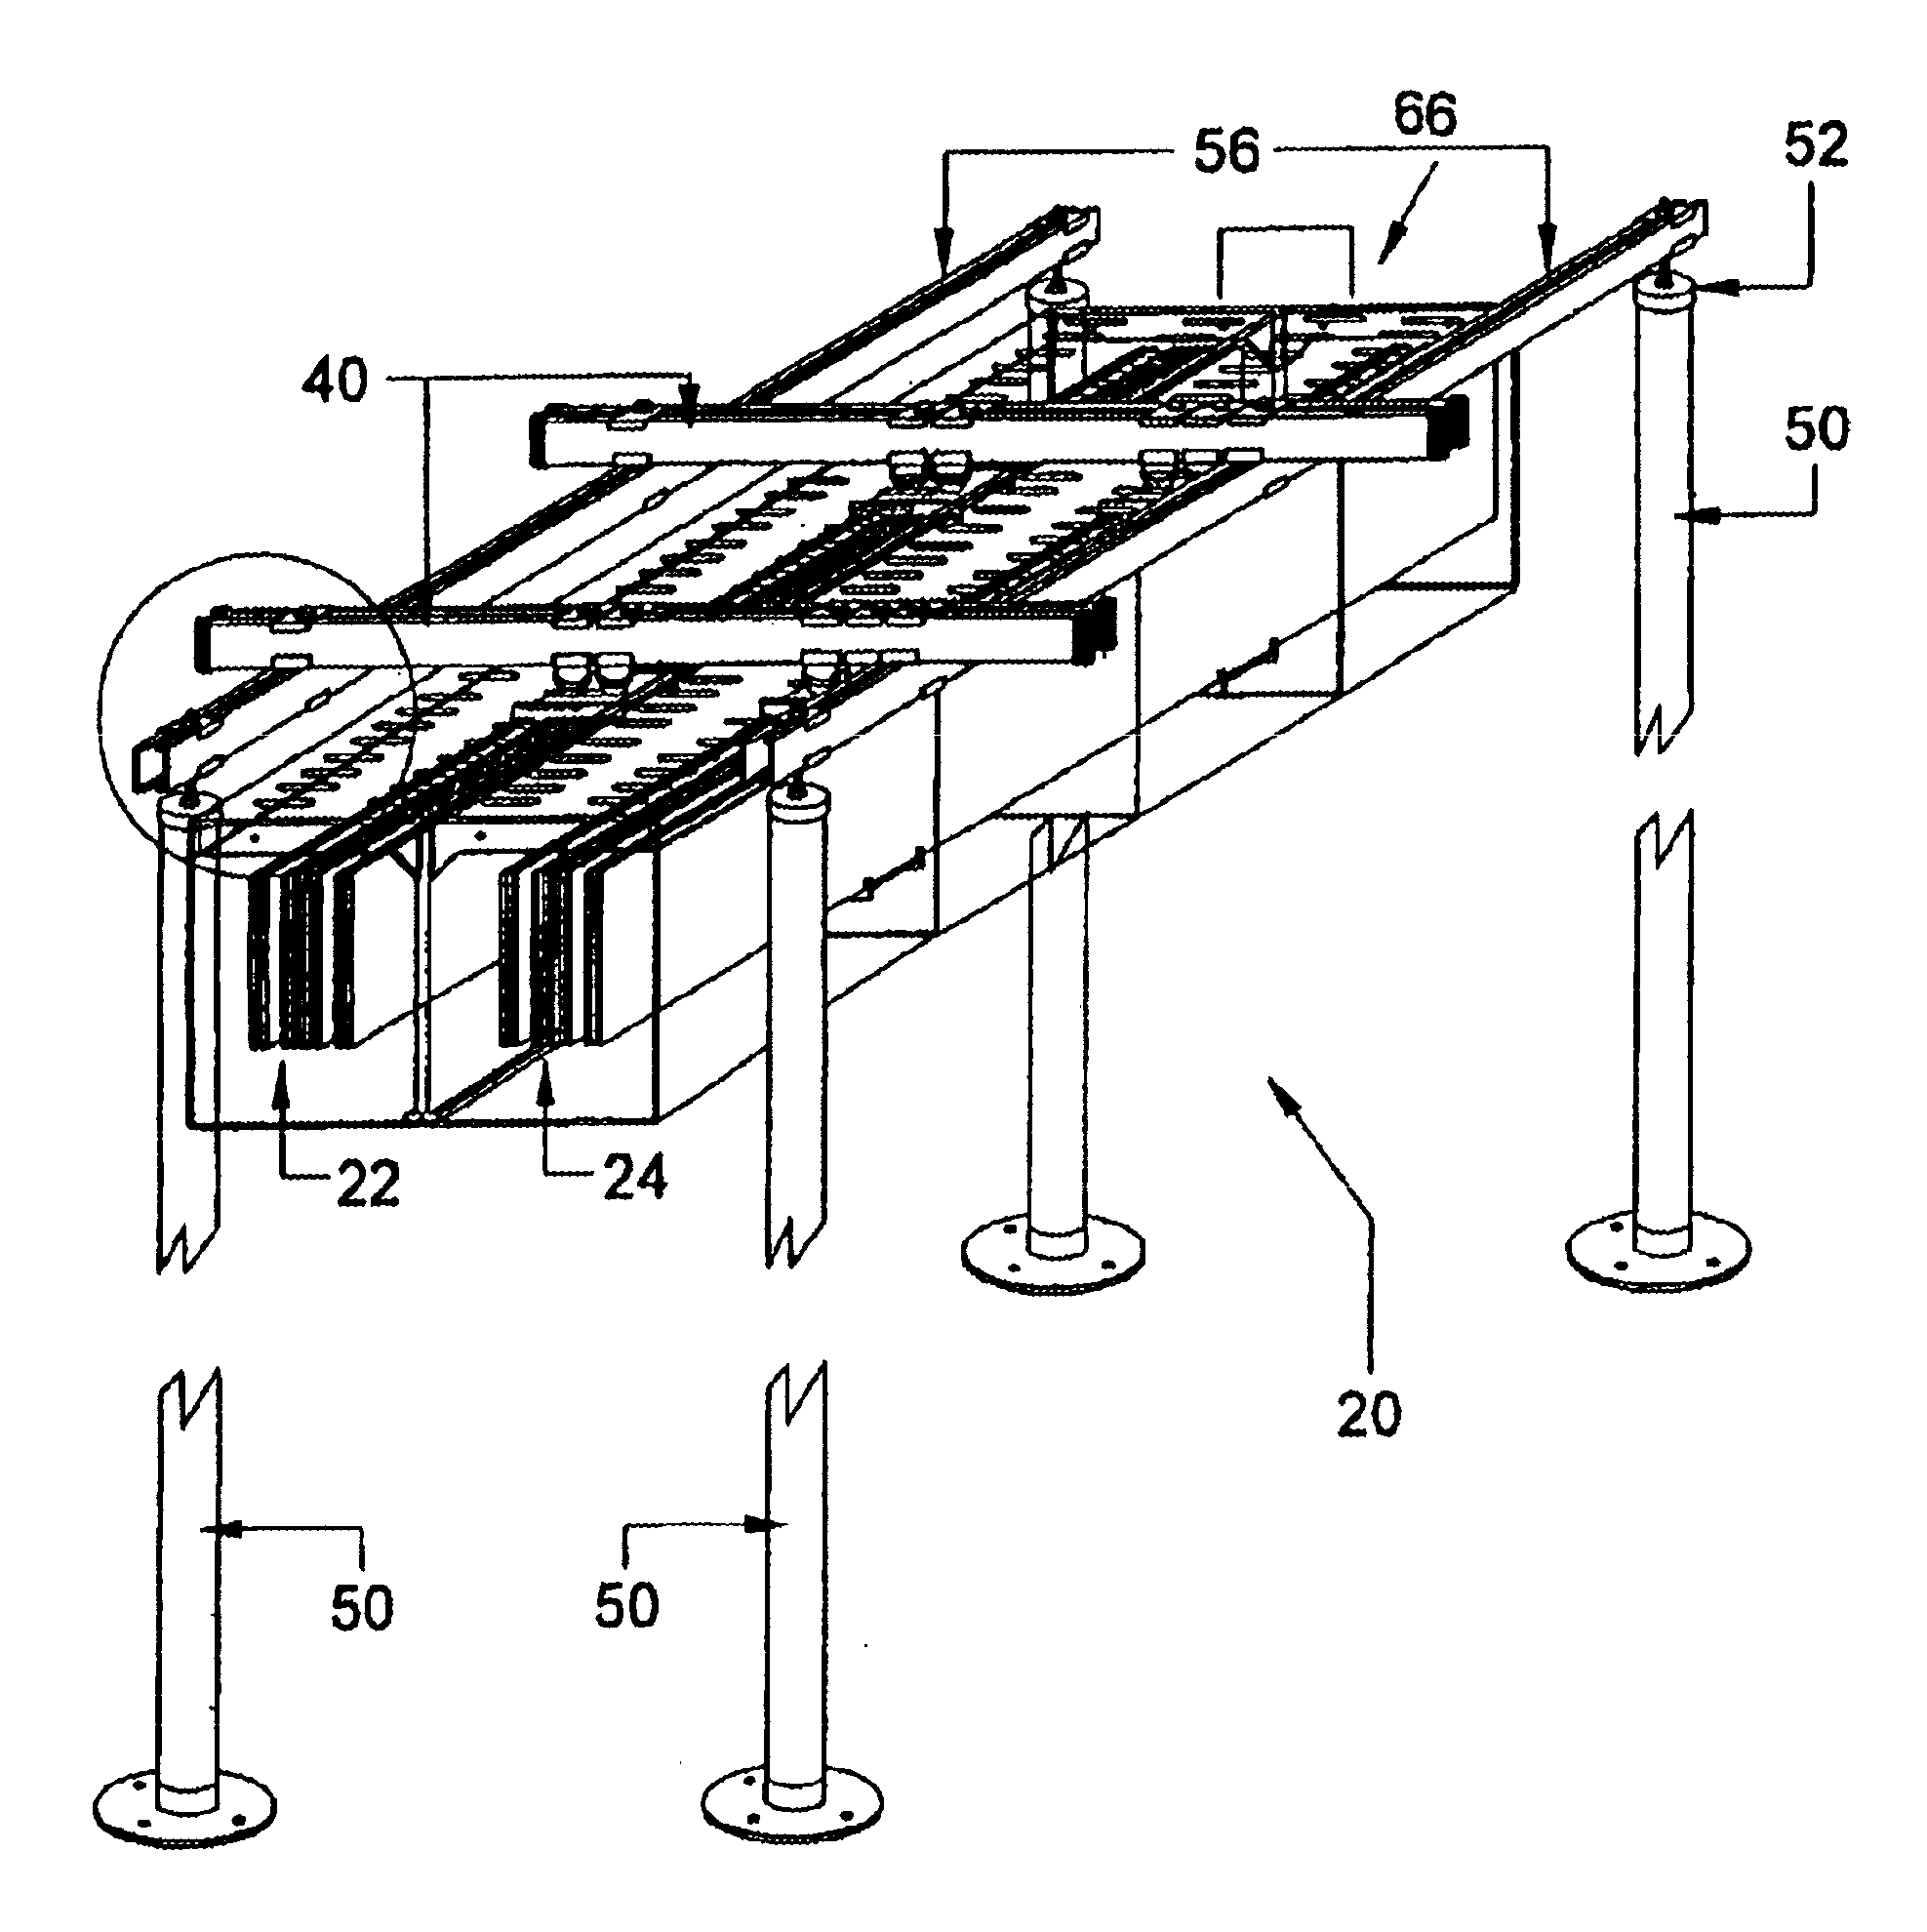 Heat Duct Supports : Patent us electrical bus duct system with heat